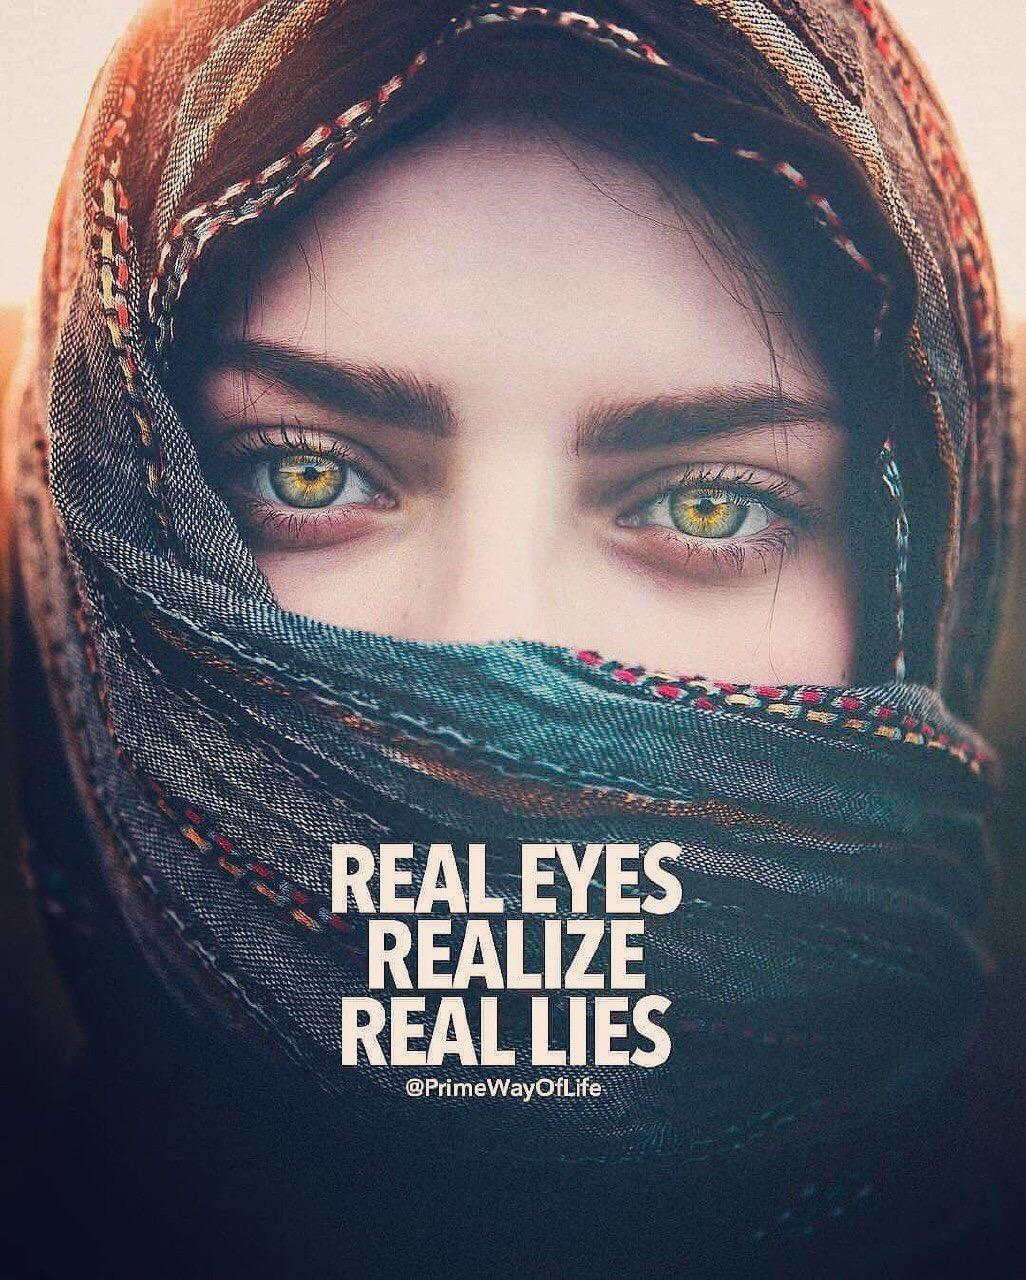 Real eyes,Realize,Real lies-unknown(1200,1500)